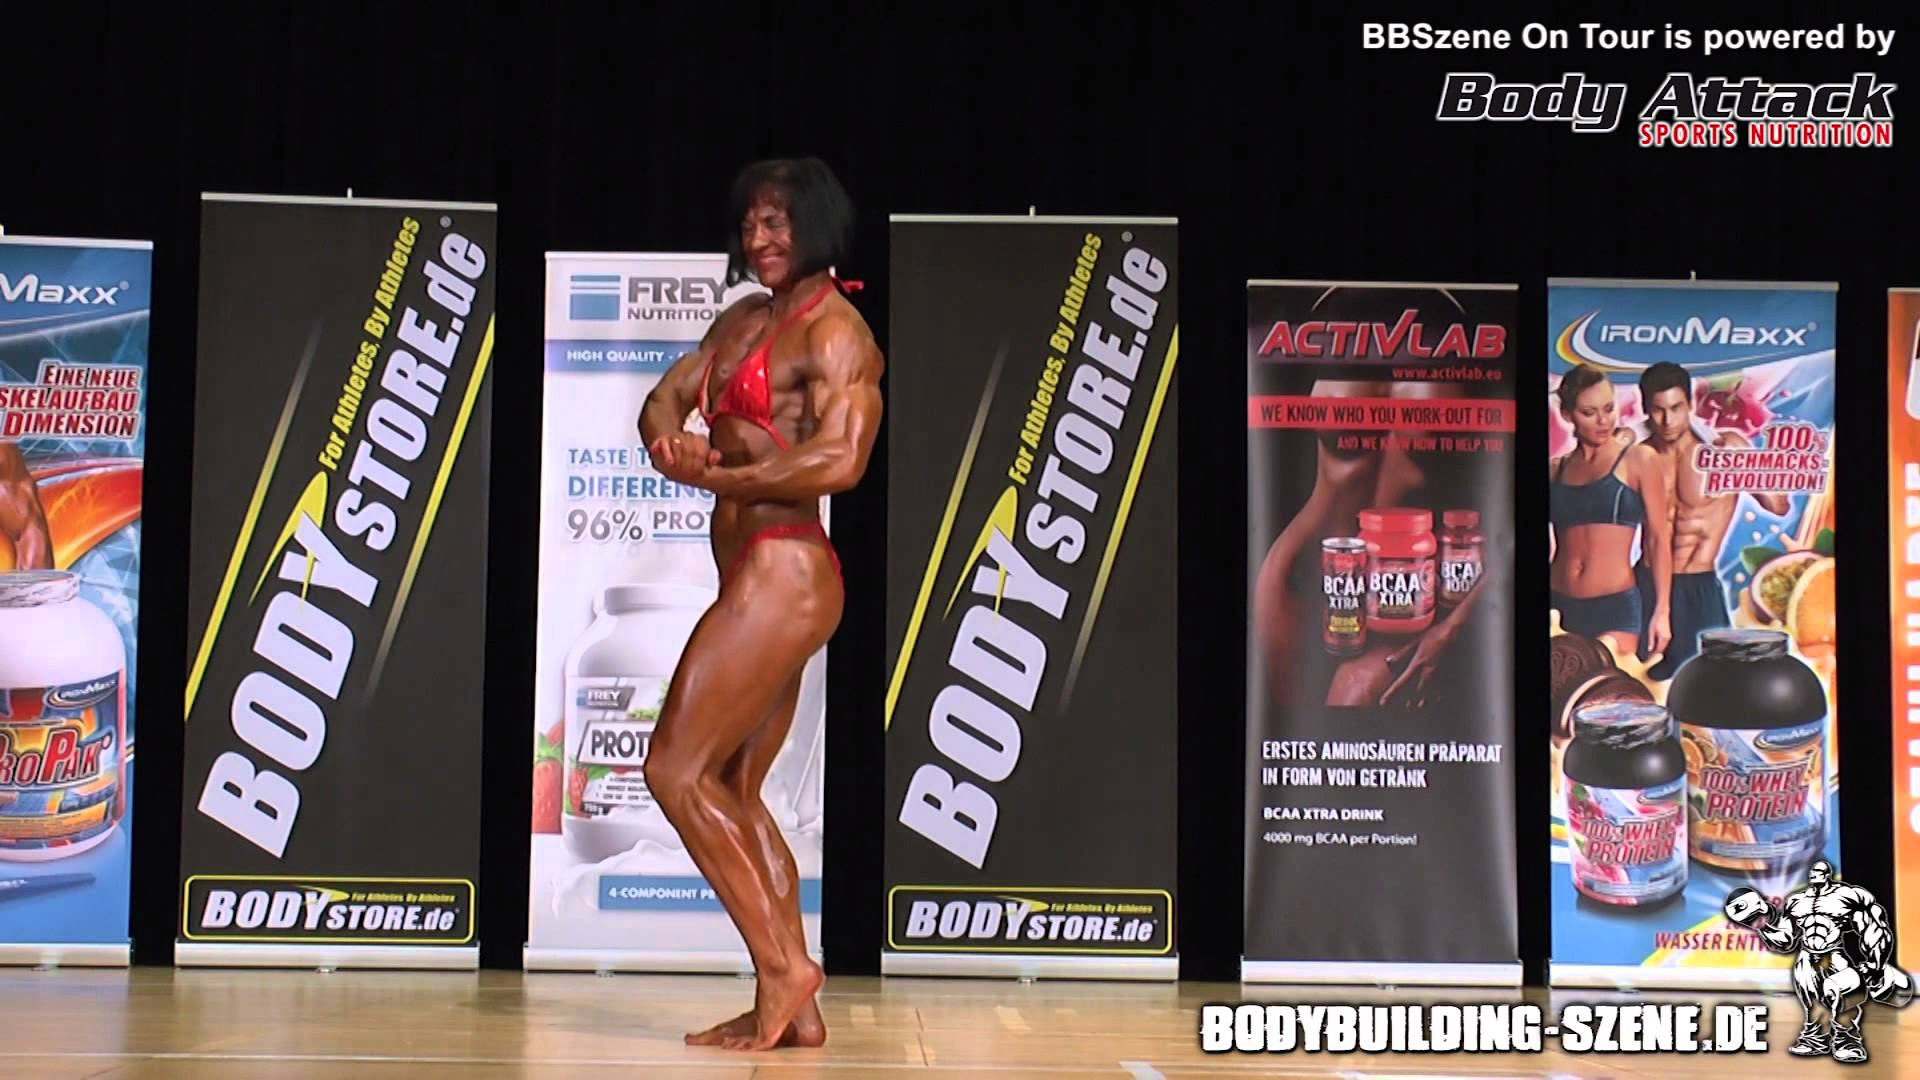 NAC German Championship 2012 – Women's Bodybuilding